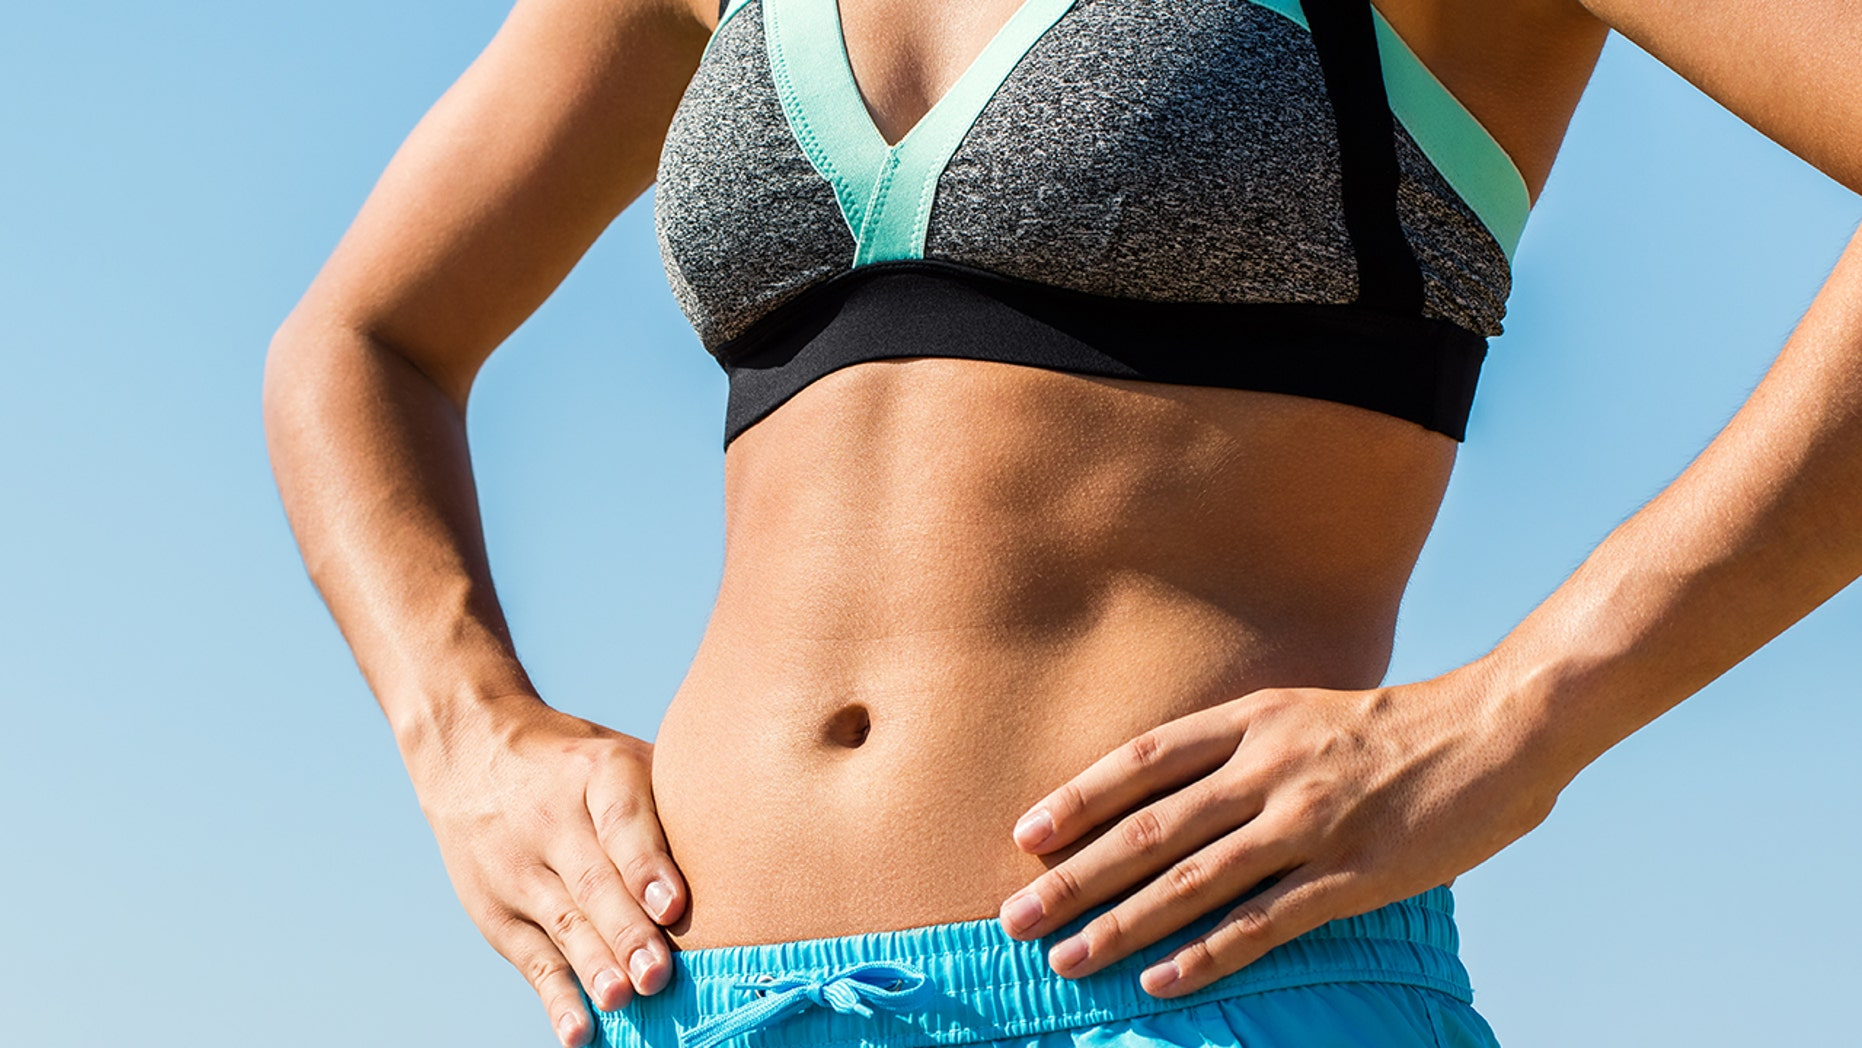 Get killer abs with these celebrity trainer-approved moves